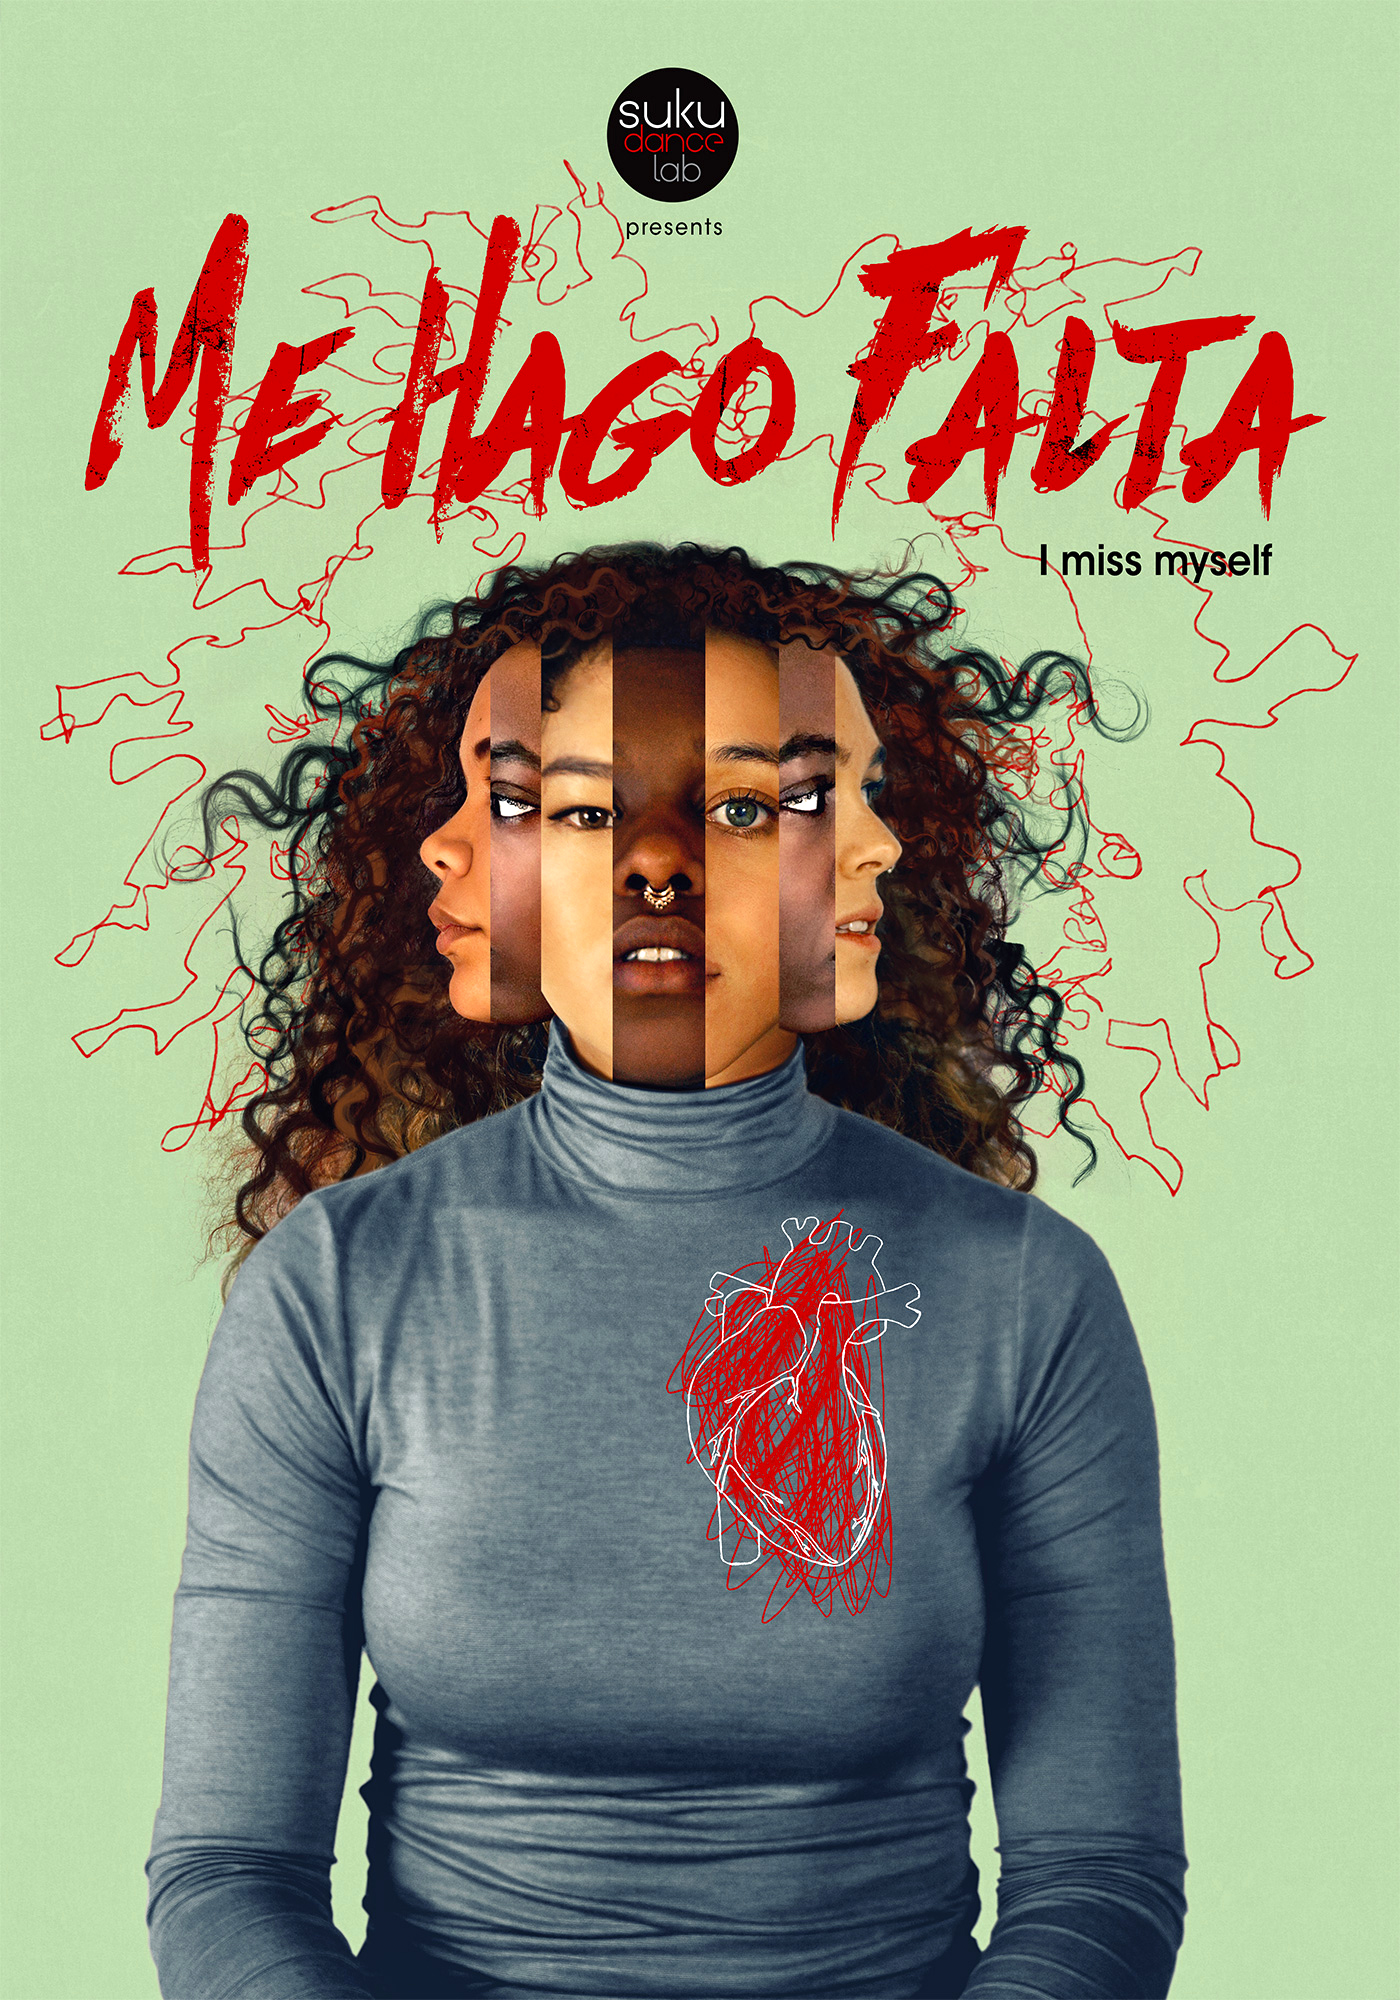 October 28 & 29, 2017     ME HAGO FALTA World Premiere    Suku Dance Lab presented The World Premiere of ME HAGO FALTA. The performance took place at 100 Bogart in Brooklyn, NY.  ME HAGO FALTA is Suku Dance Lab's first evening length production of immersive and interactive dance theater performance.    Performers:  Belinda Adam, Anya Clarke, Reanna Comstock, Dominica Greene, Nuria Martin Fandos. J'nae Simmons